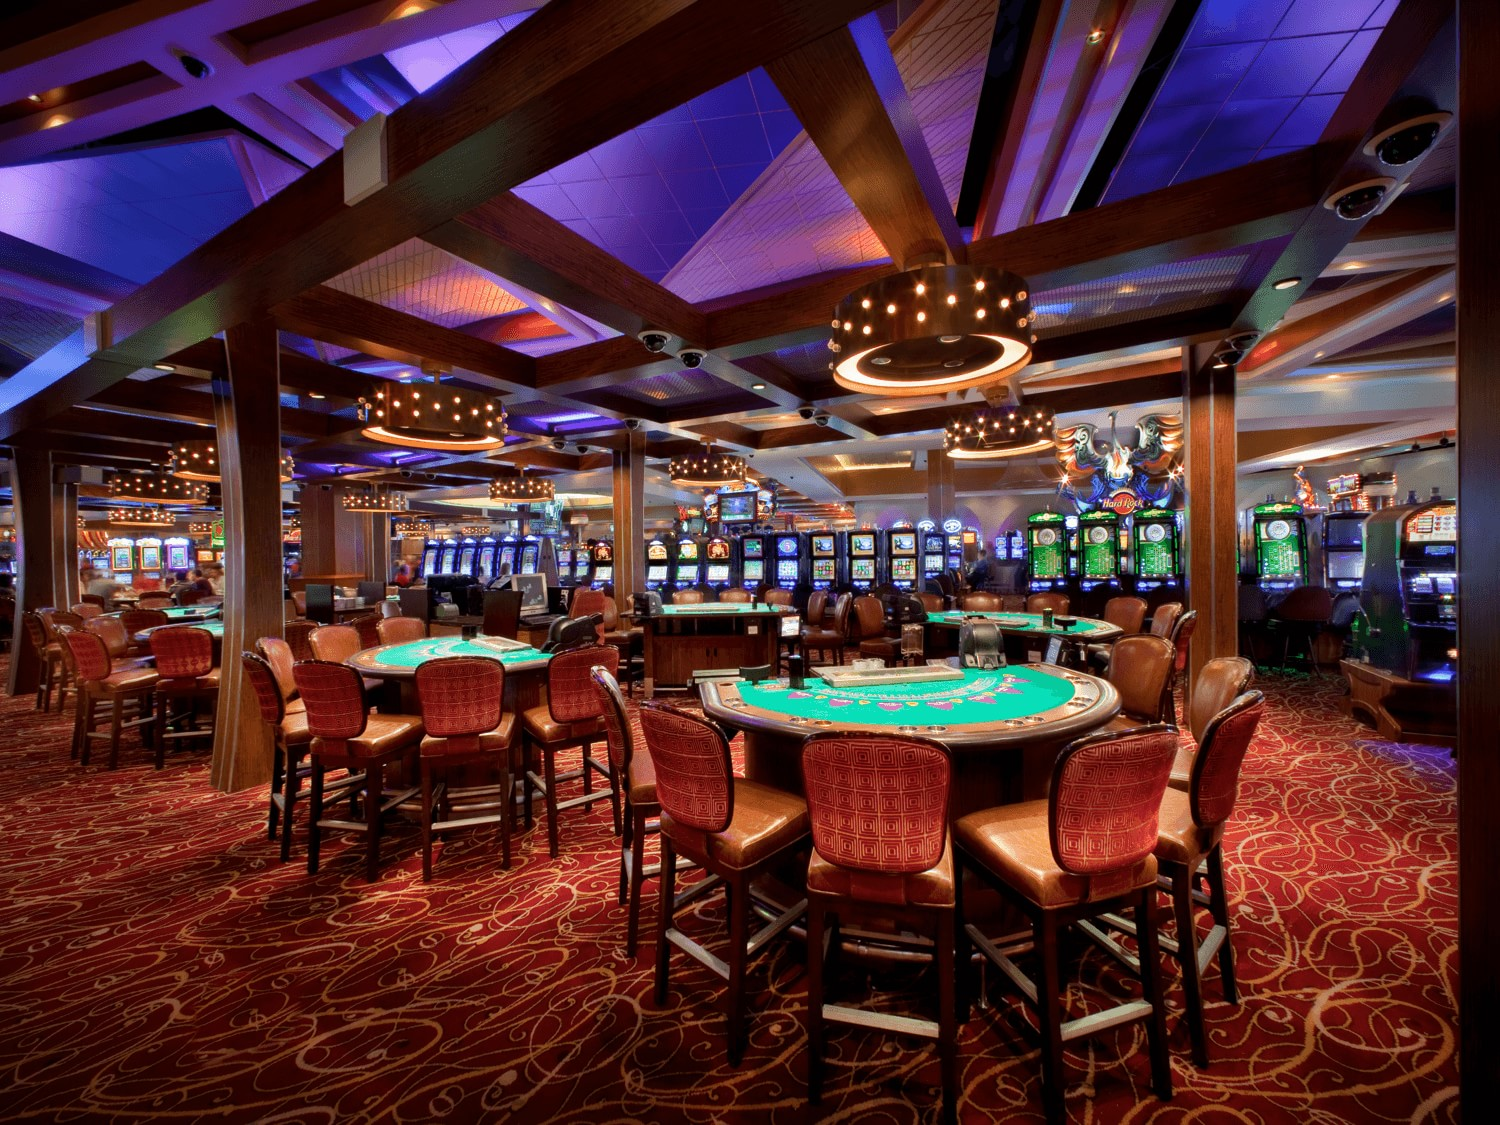 Crocodile rock casino address in hollywood florida casino cnnecticut